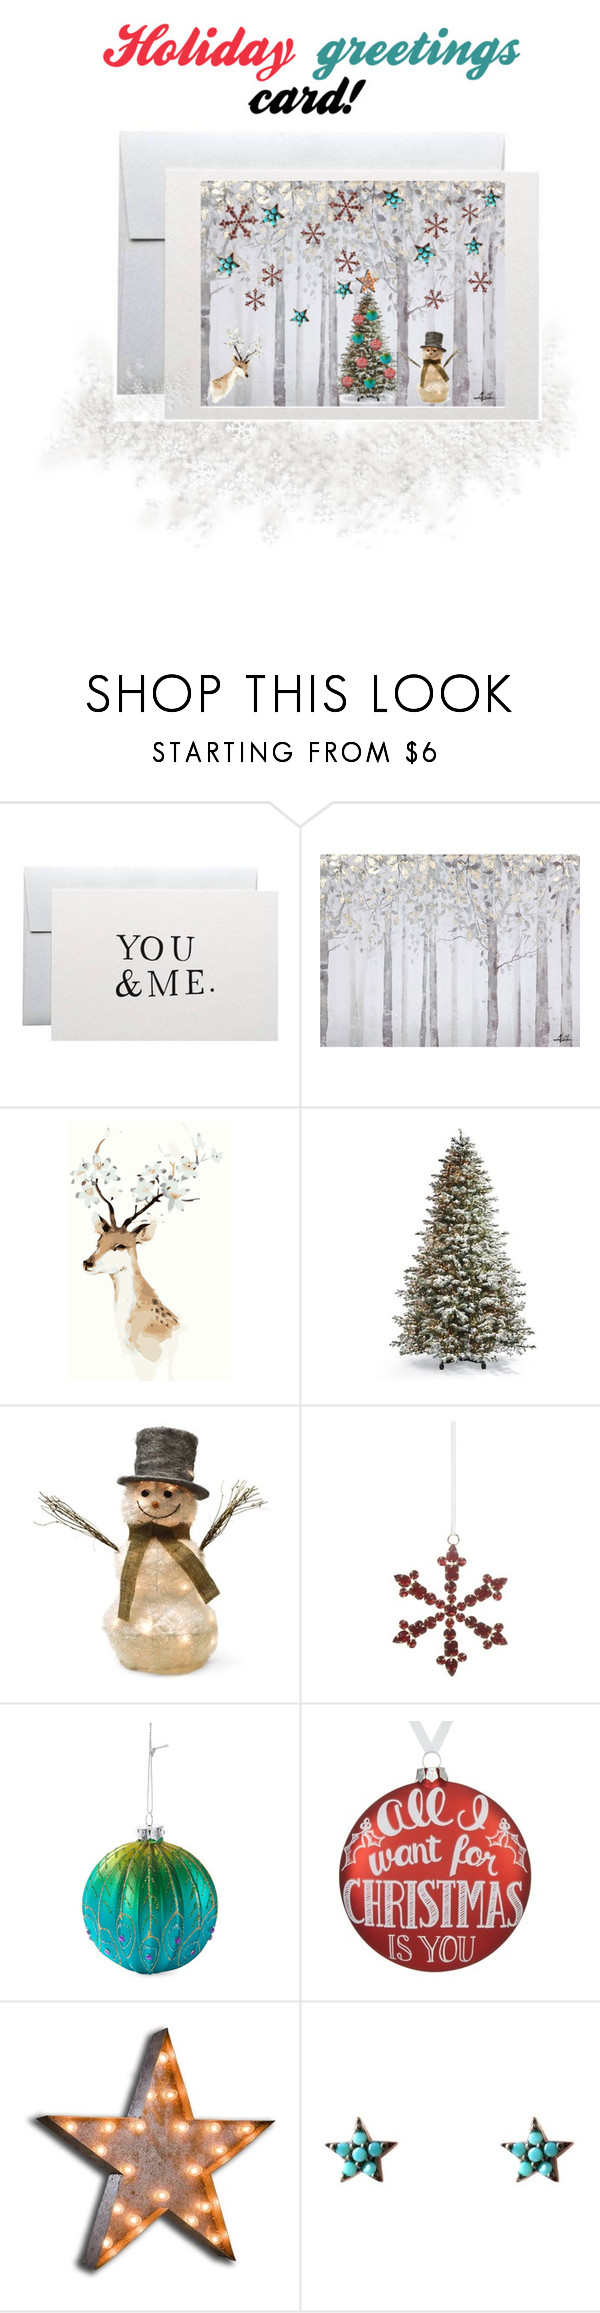 """""""Holiday Greetings Card!"""" by beanpod ❤ liked on Polyvore featuring Yosemite Home Décor, Frontgate, Shea's Wildflower Company, Shishi, John Lewis, Vintage Marquee Lights, Wild Hearts, holidaygreetingcard and PVStyleInsiders"""